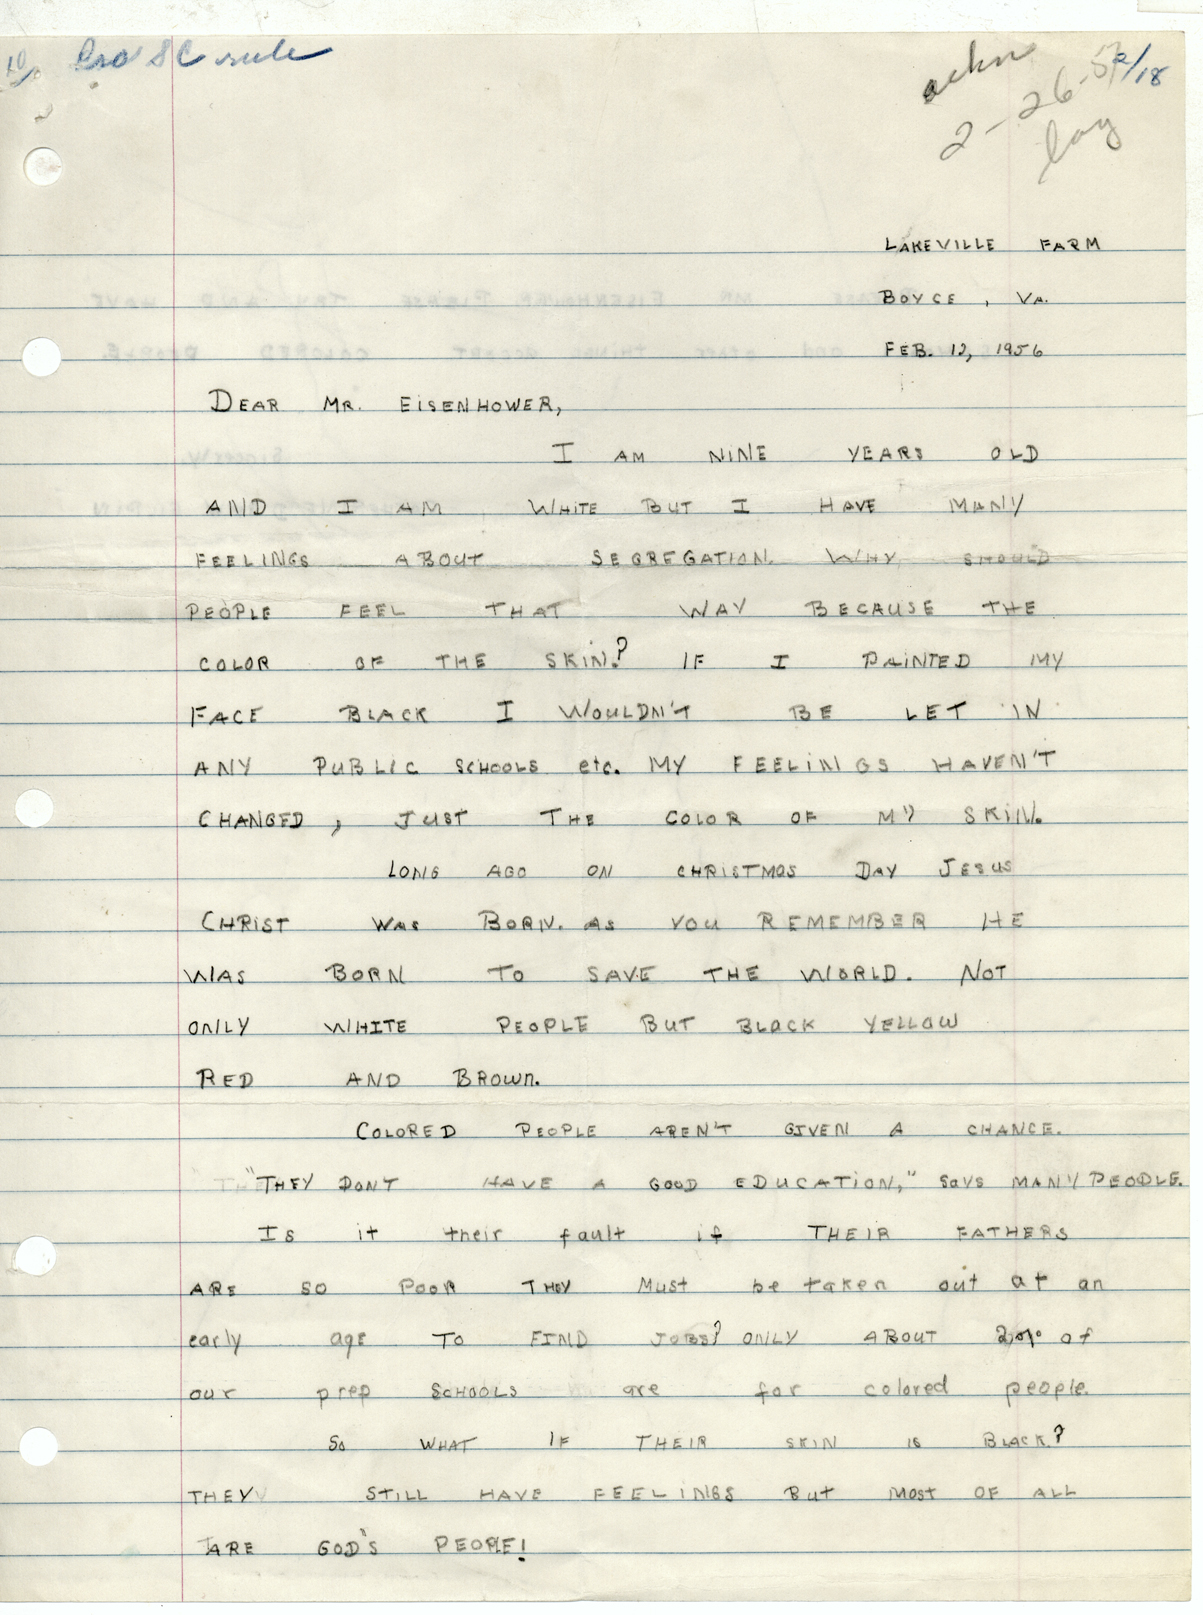 Drew Gilpin's letter (page 1) to President Eisenhower, 9 February 1957 (misdated 1956), Dwight D. Eisenhower Presidential Library.